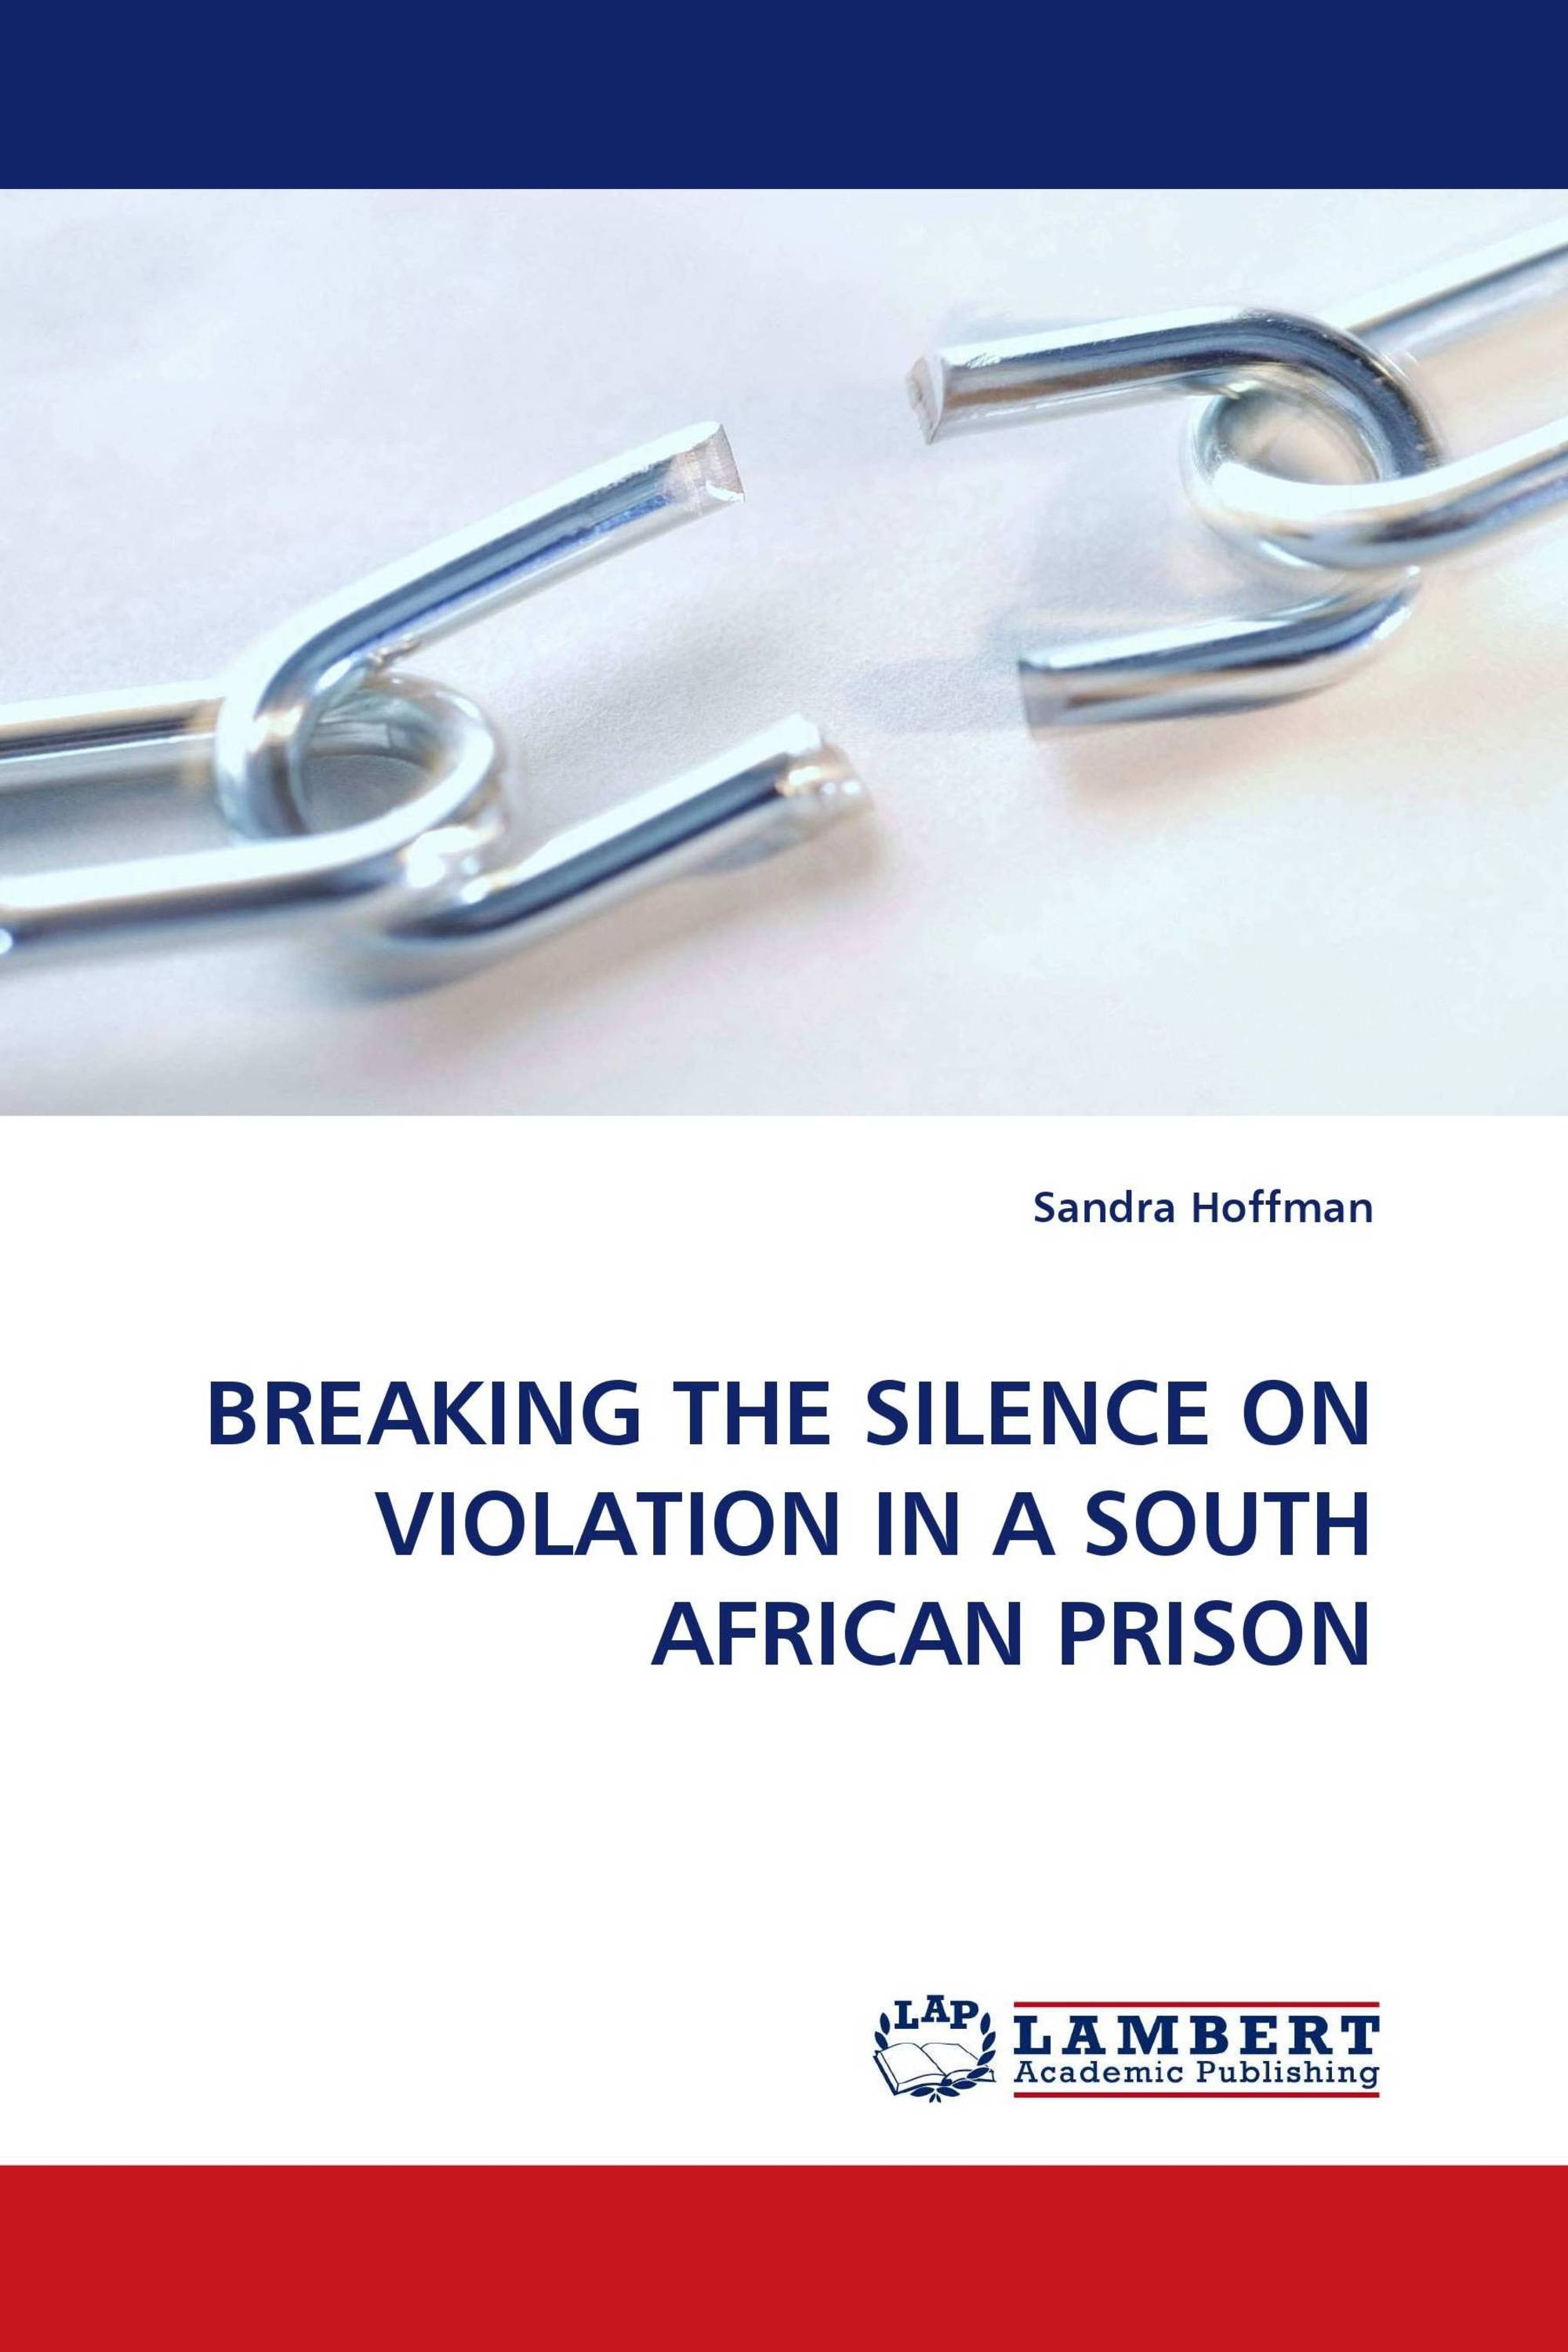 BREAKING THE SILENCE ON VIOLATION IN A SOUTH AFRICAN PRISON